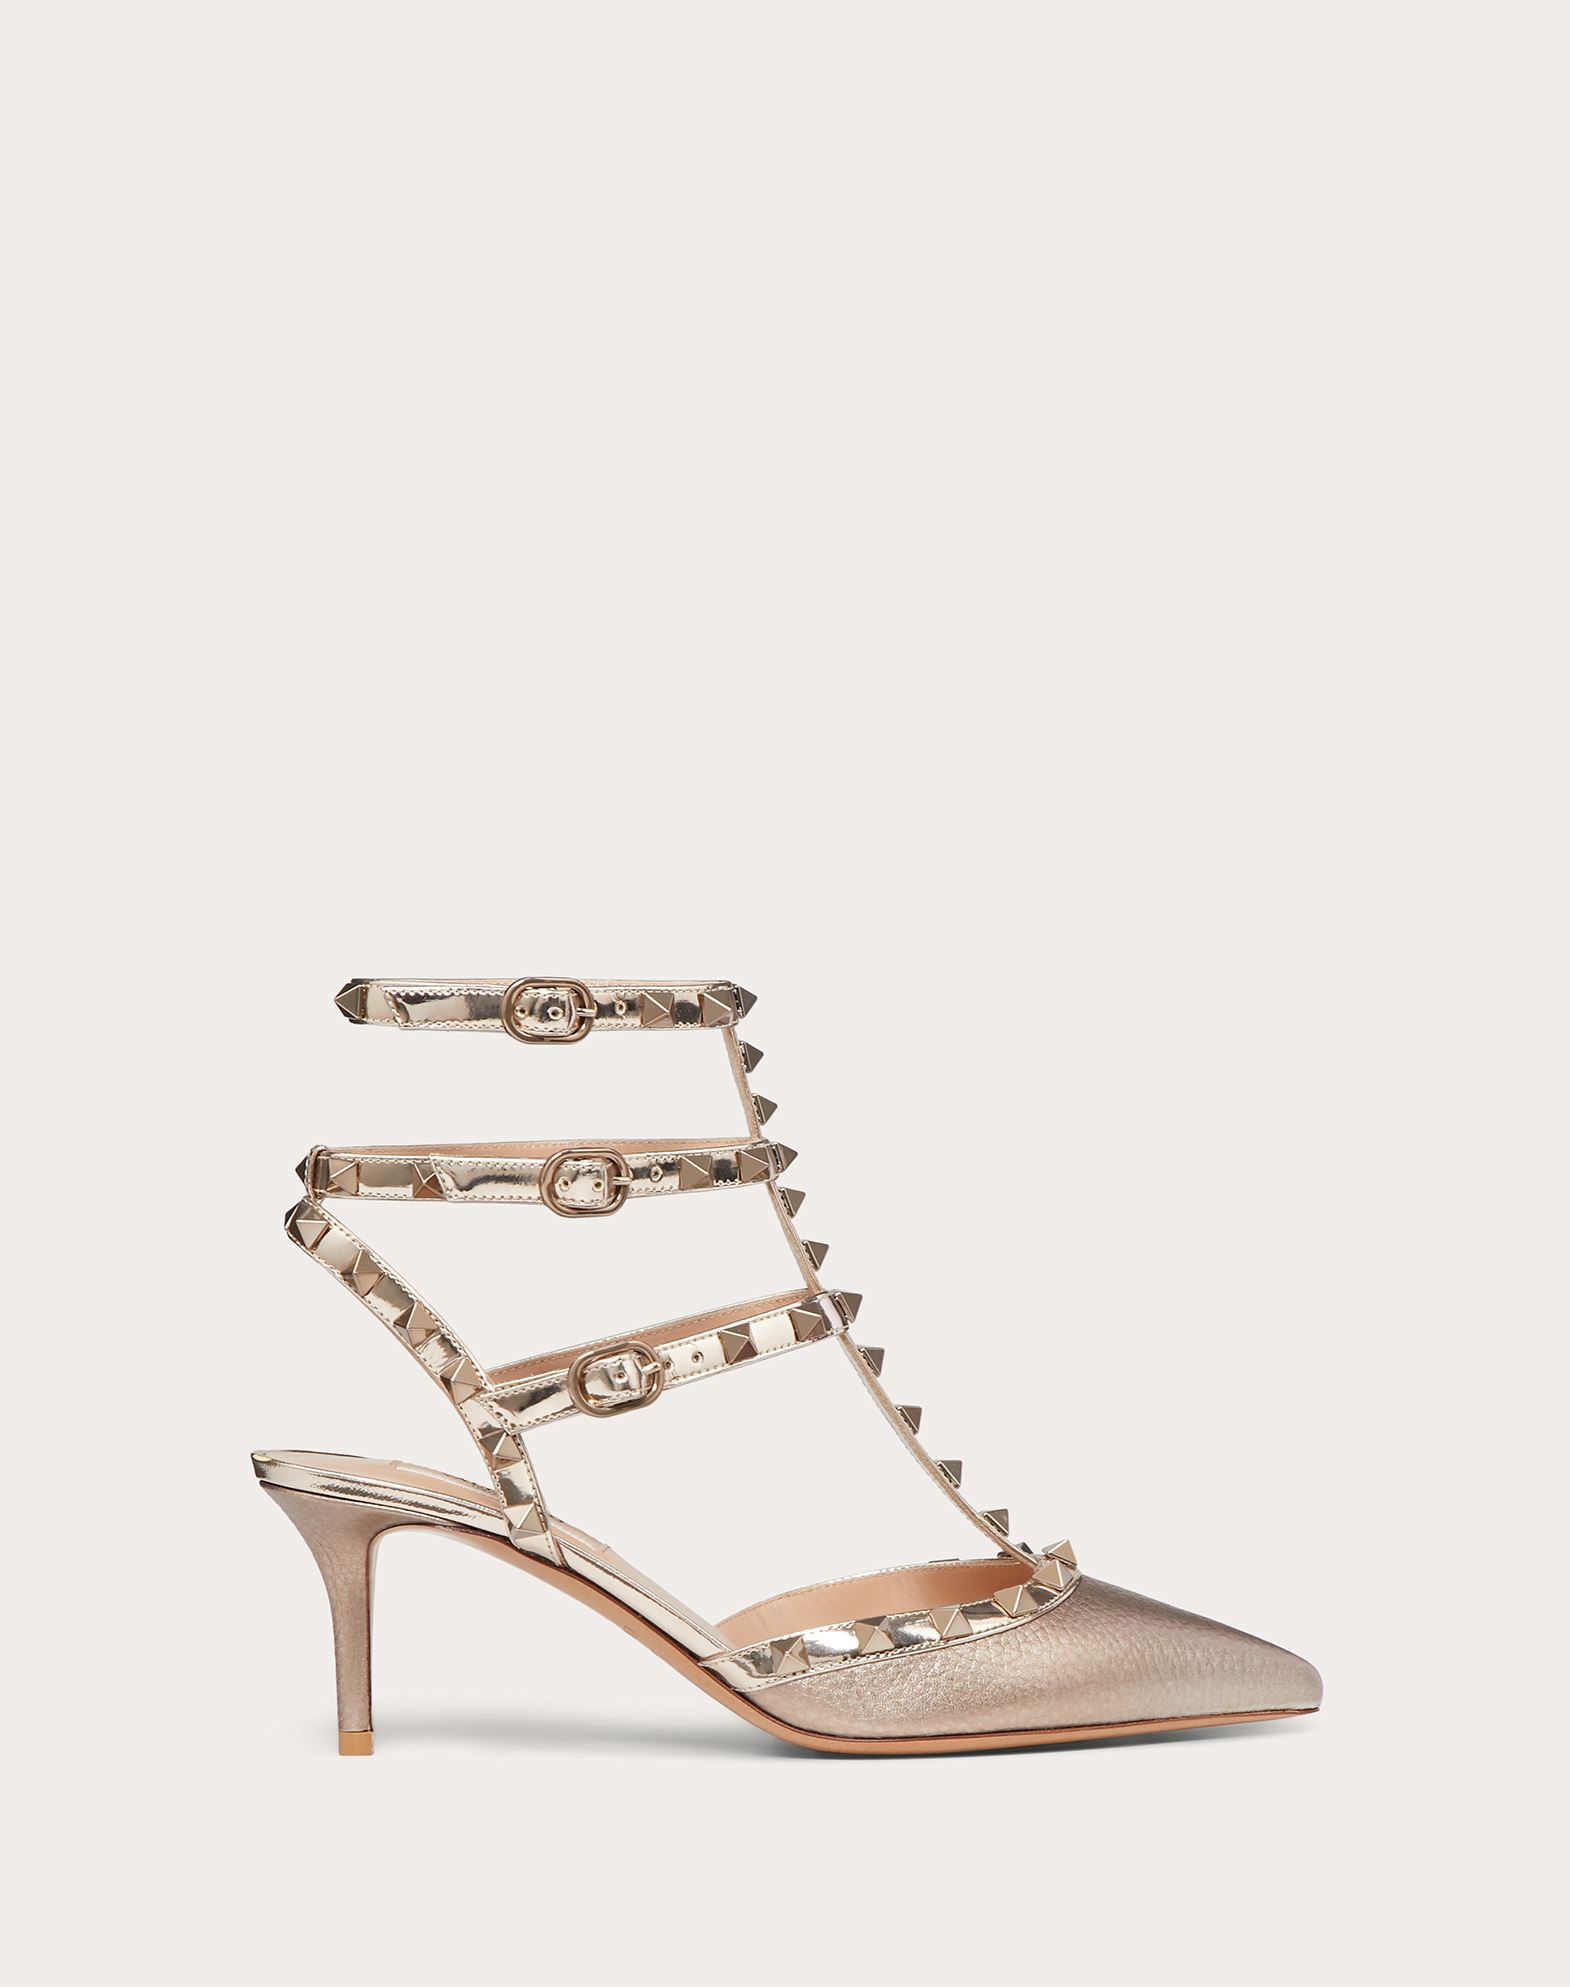 Rockstud Metallic Grainy Calfskin Leather Ankle Strap Pump 66 mm